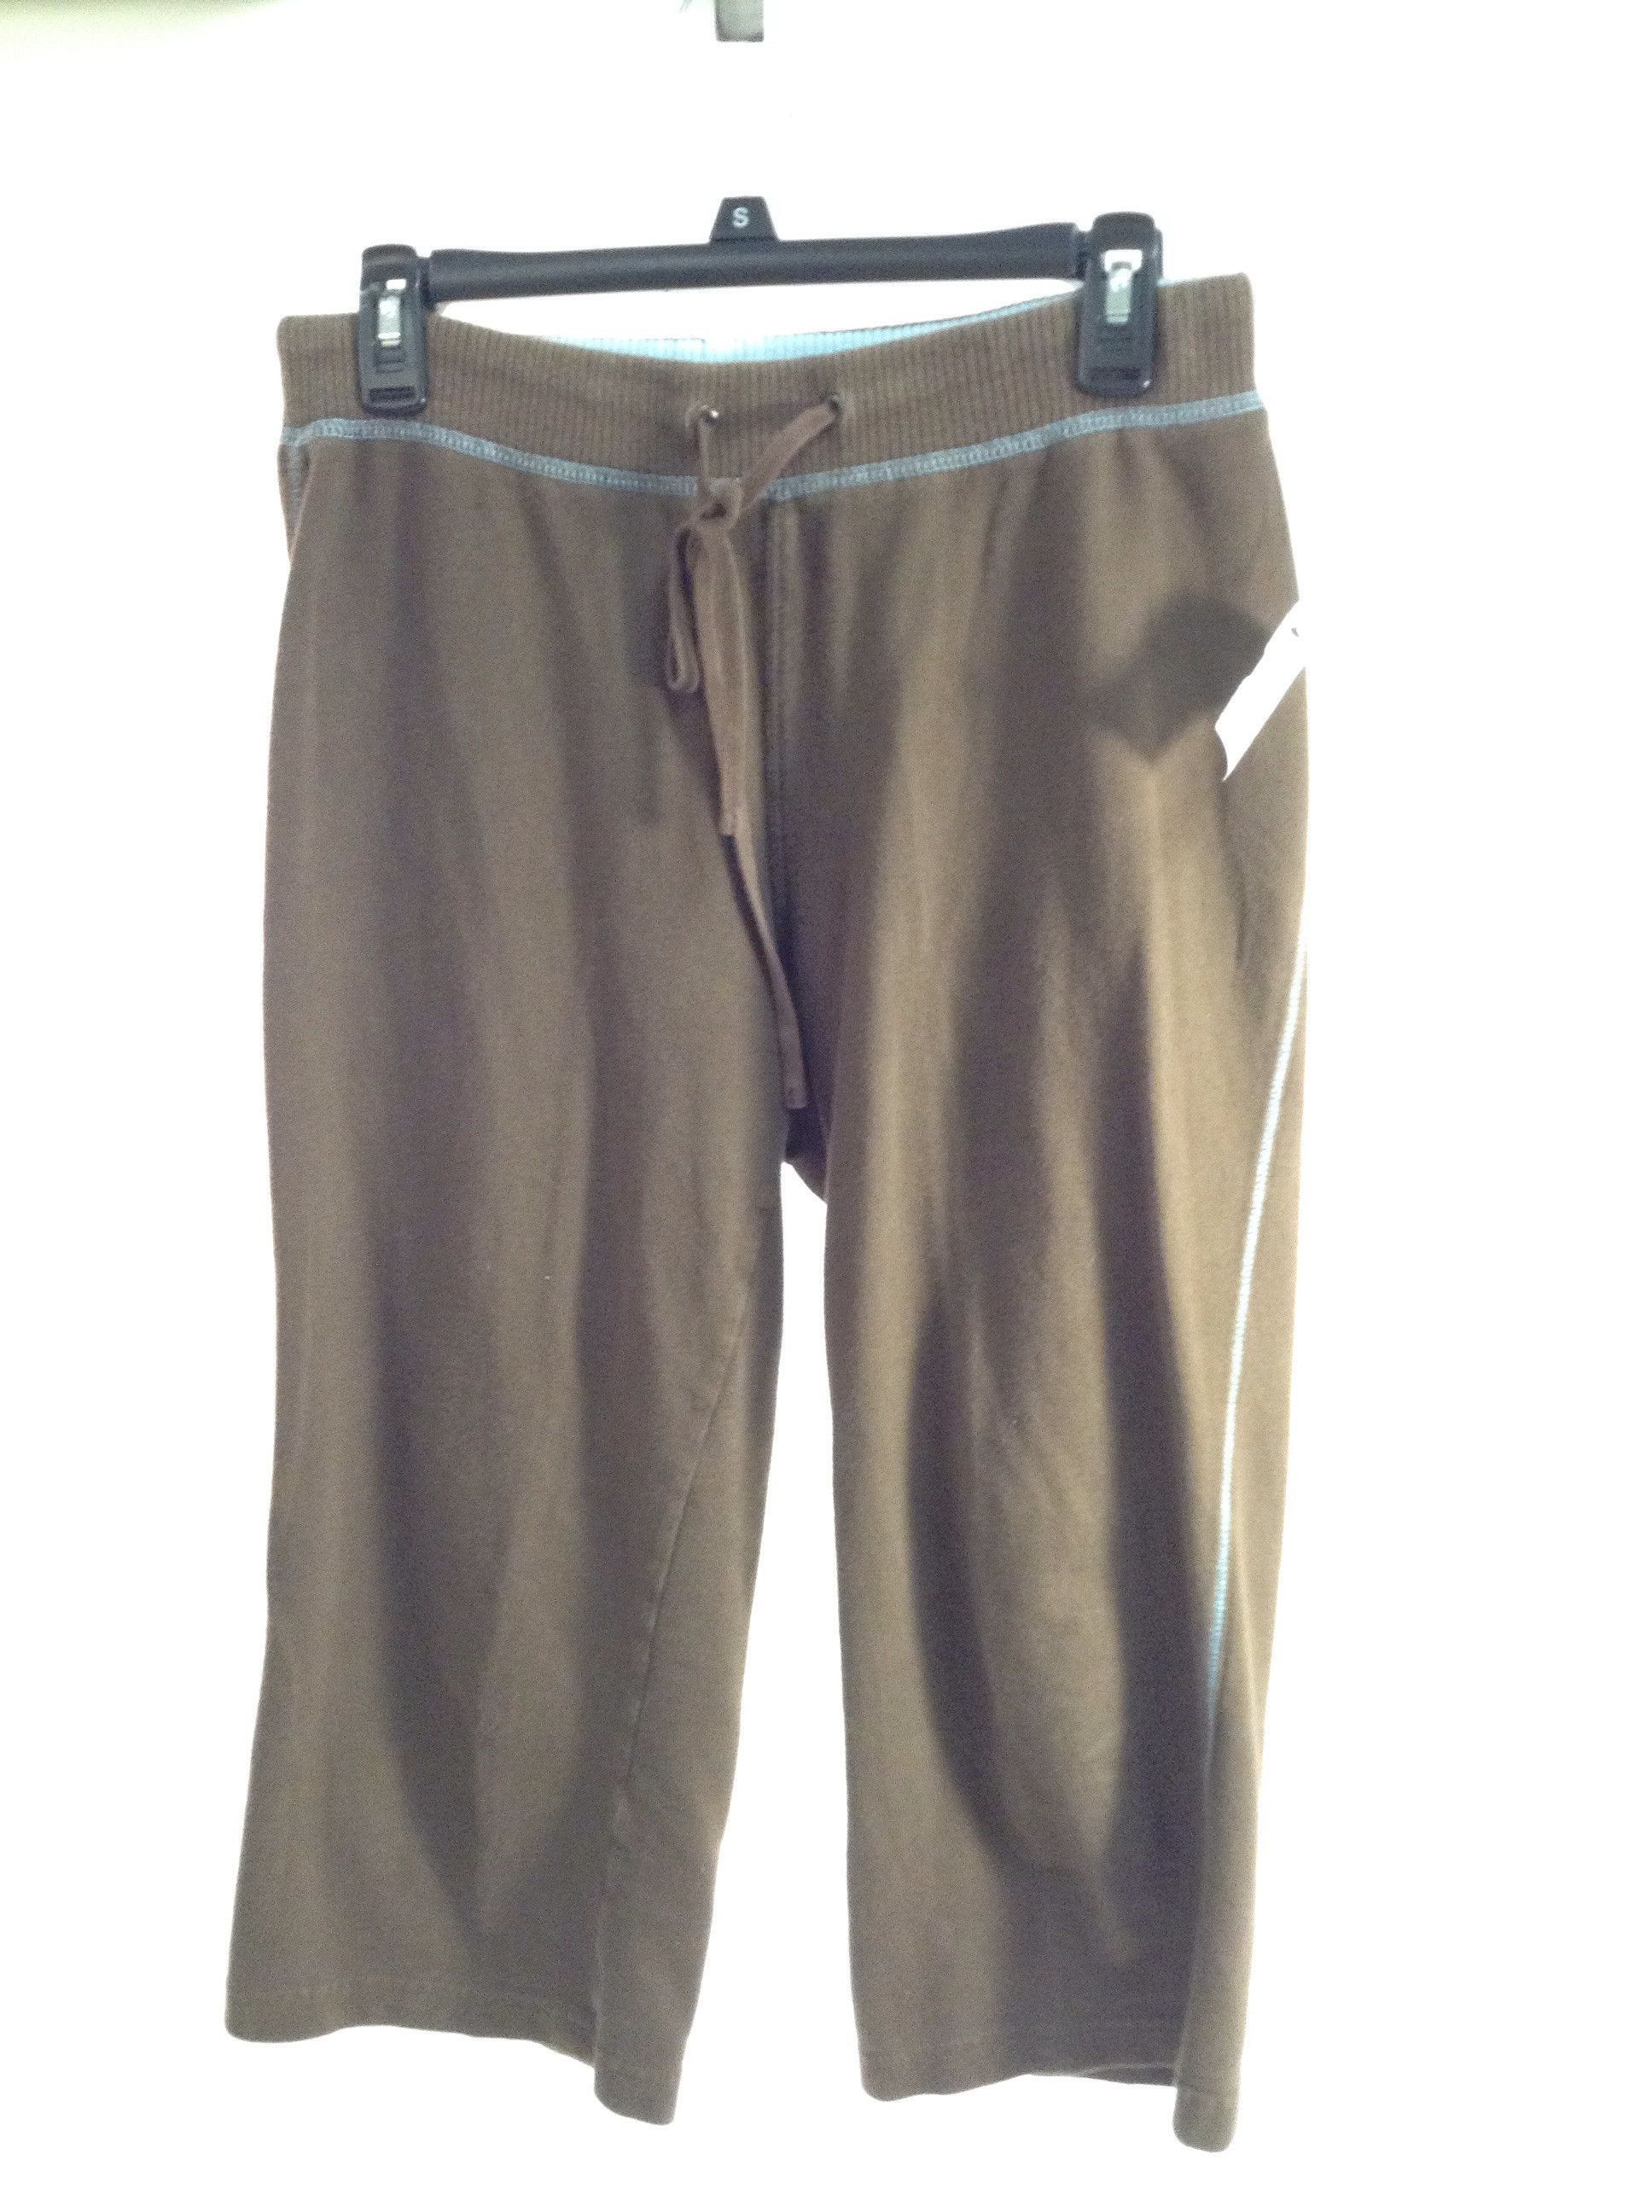 Brown Exercise Capris